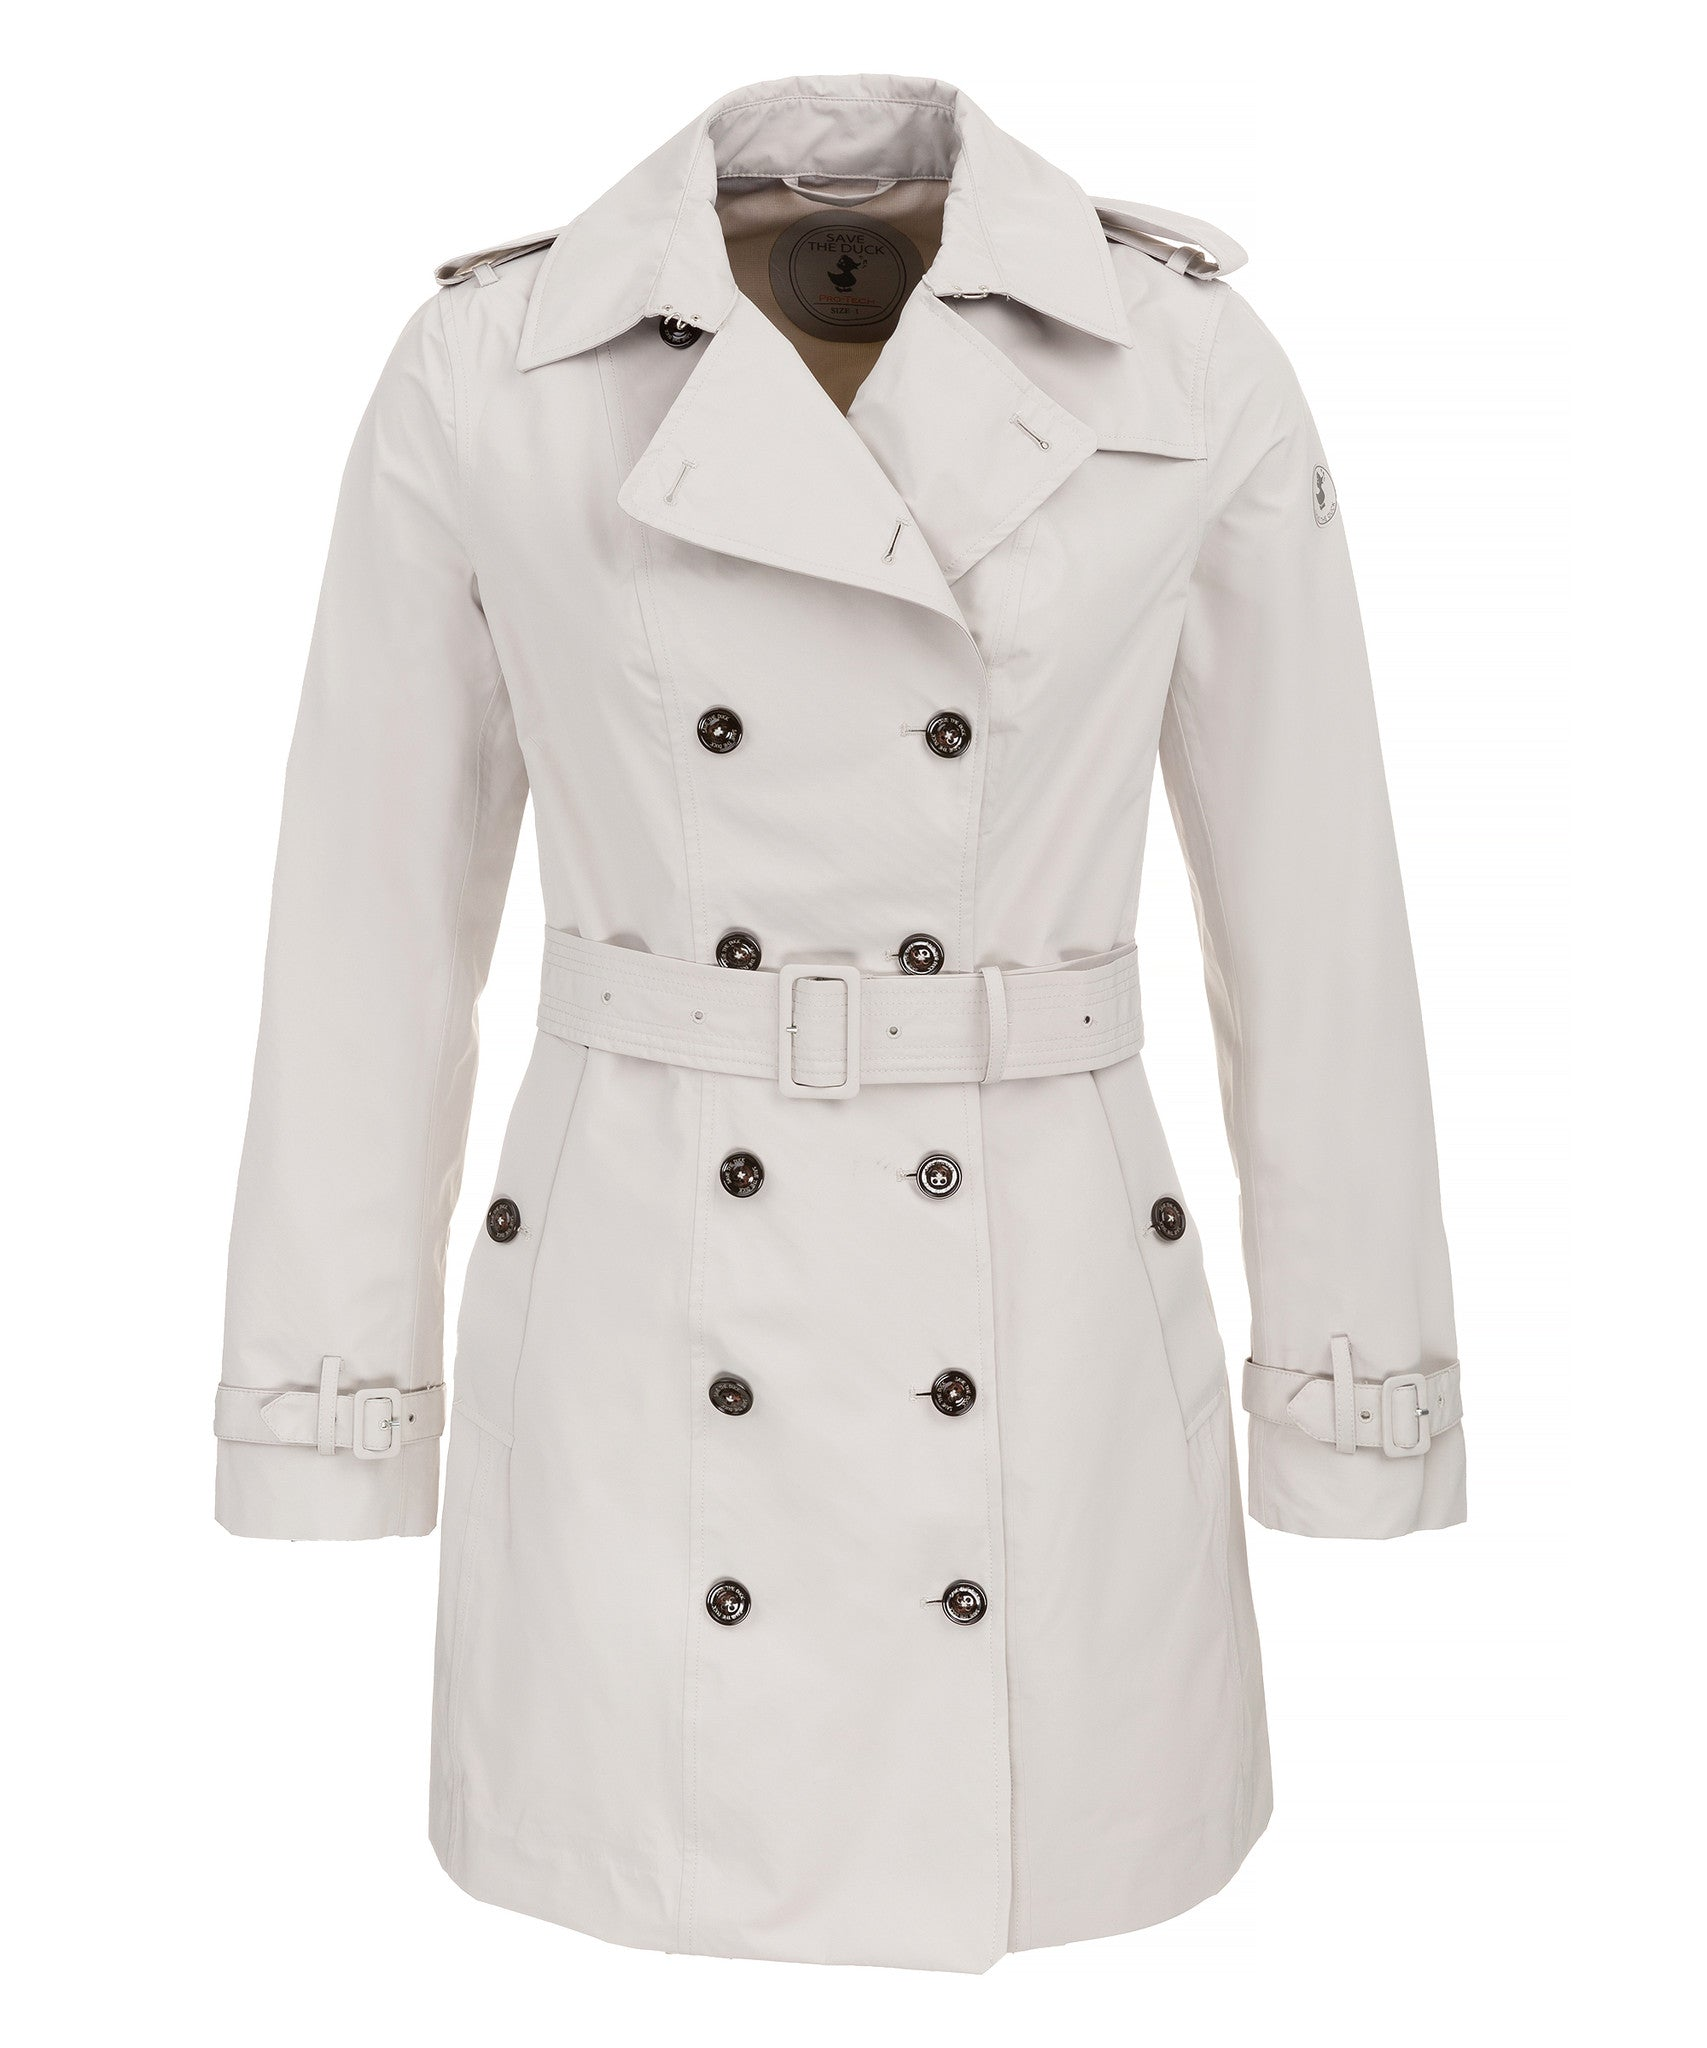 070f664c73f63 Save The Duck Women's Coat in Ice Grey - Save the Duck